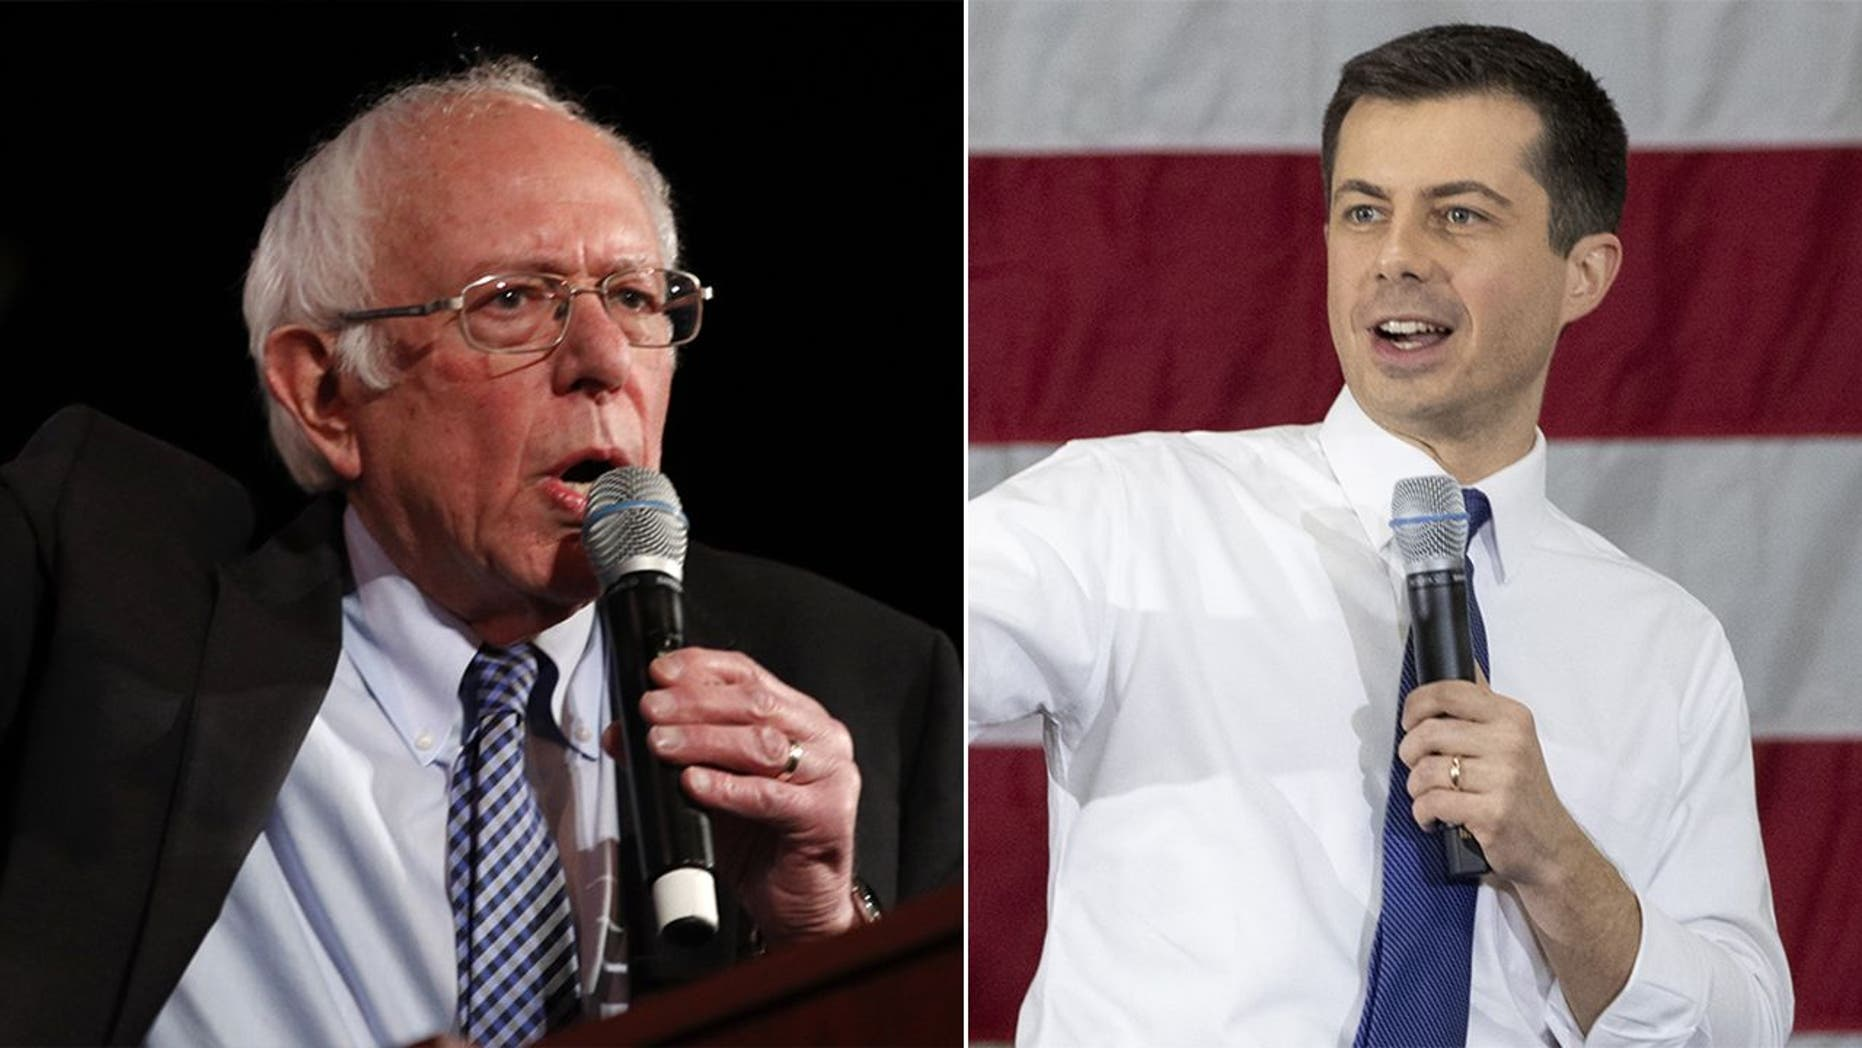 New Hampshire primary voting begins as Sanders and Buttigieg battle for top spot, Biden feels the heat